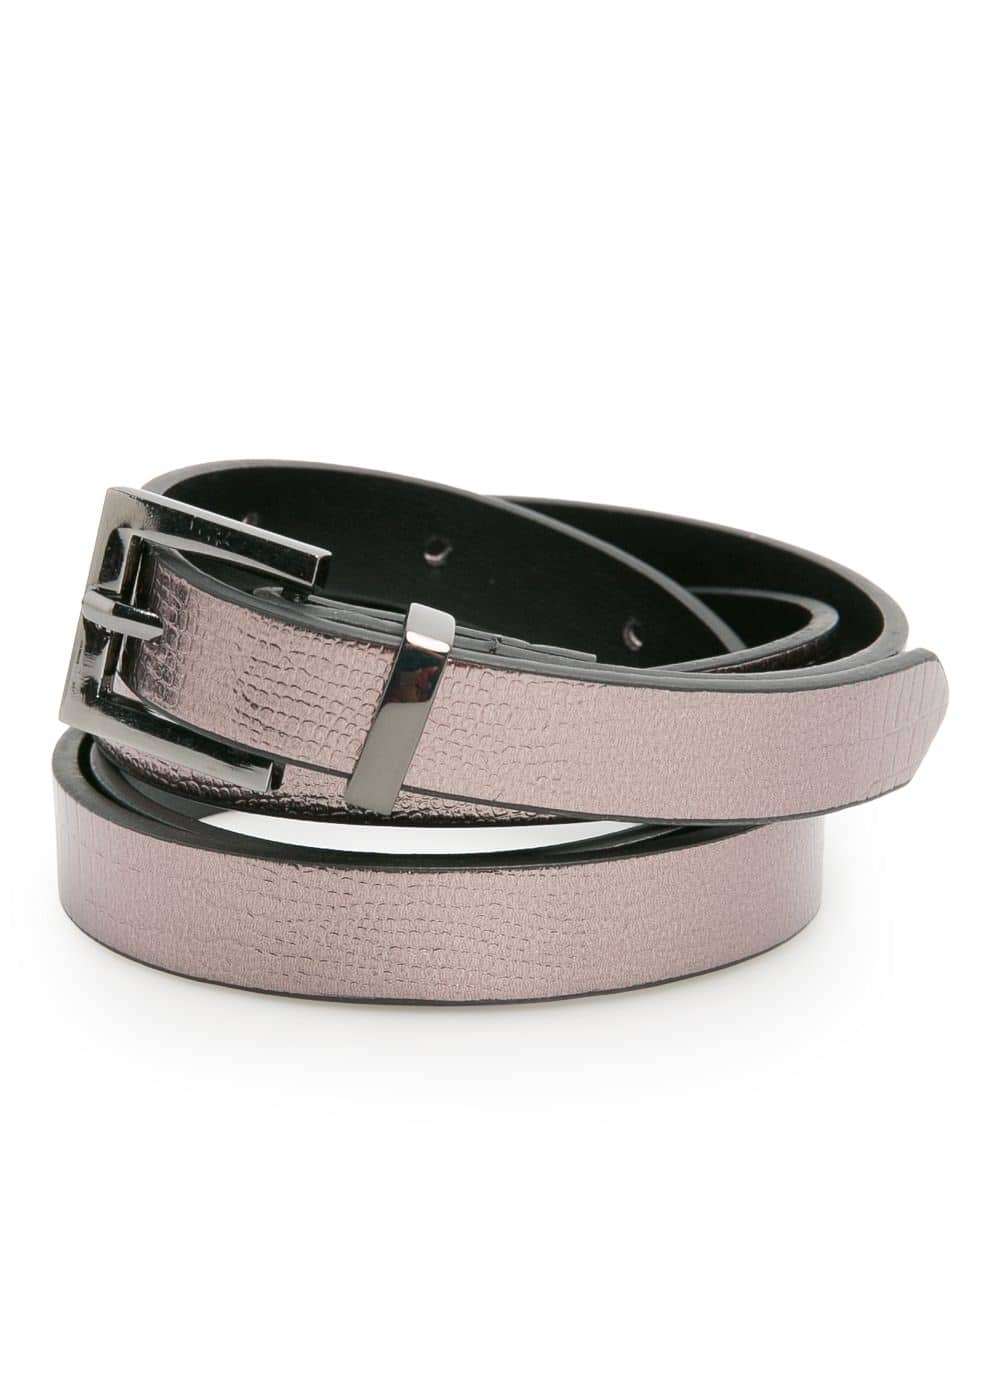 Animal-effect belt